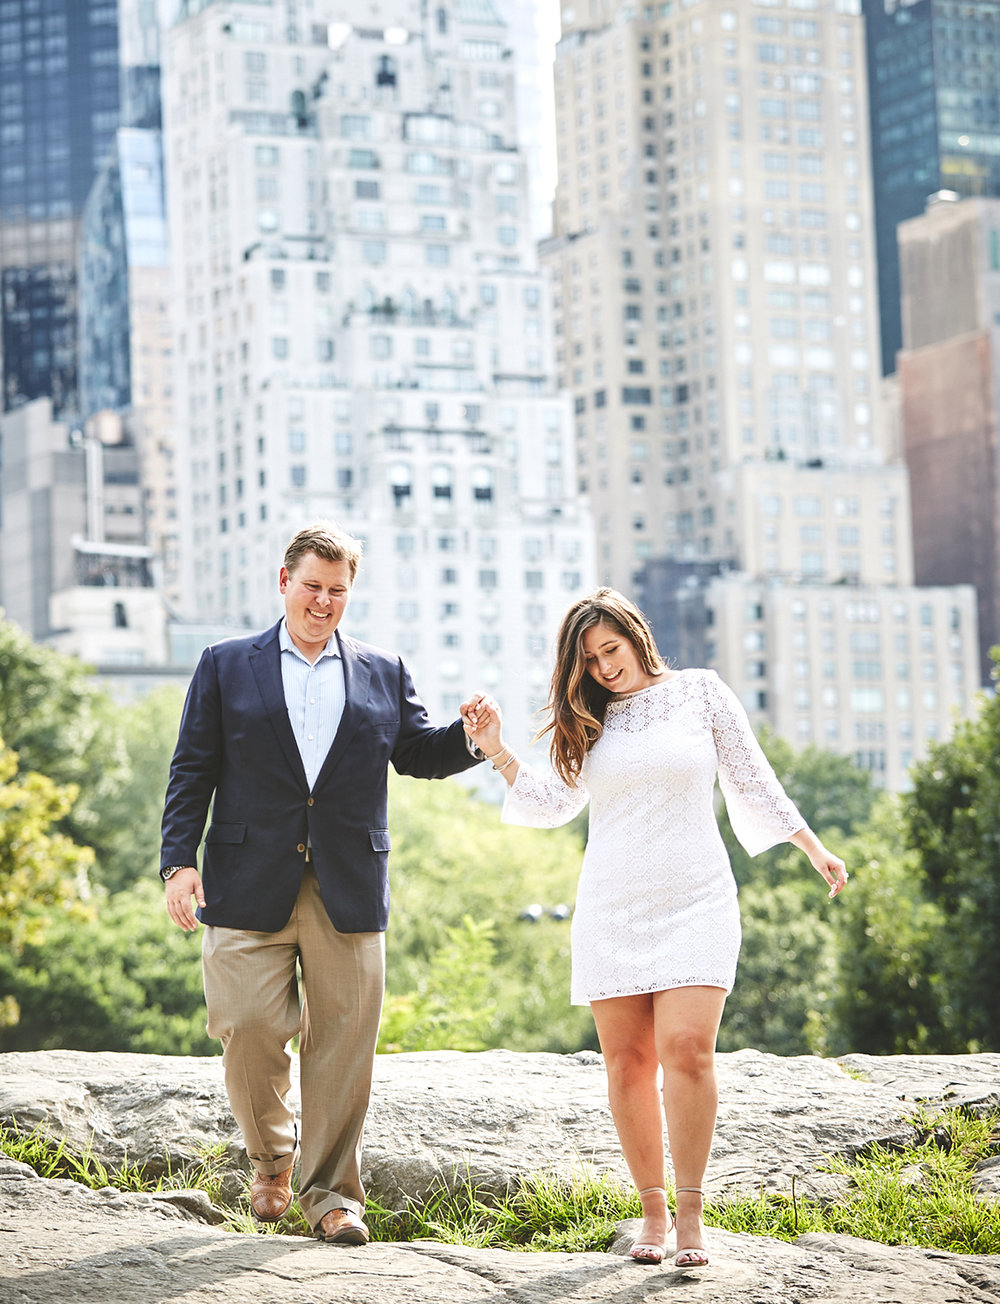 170811_EngagementPhotography_CentralParkEngagement_By_BriJohnsonWeddings_0013.jpg